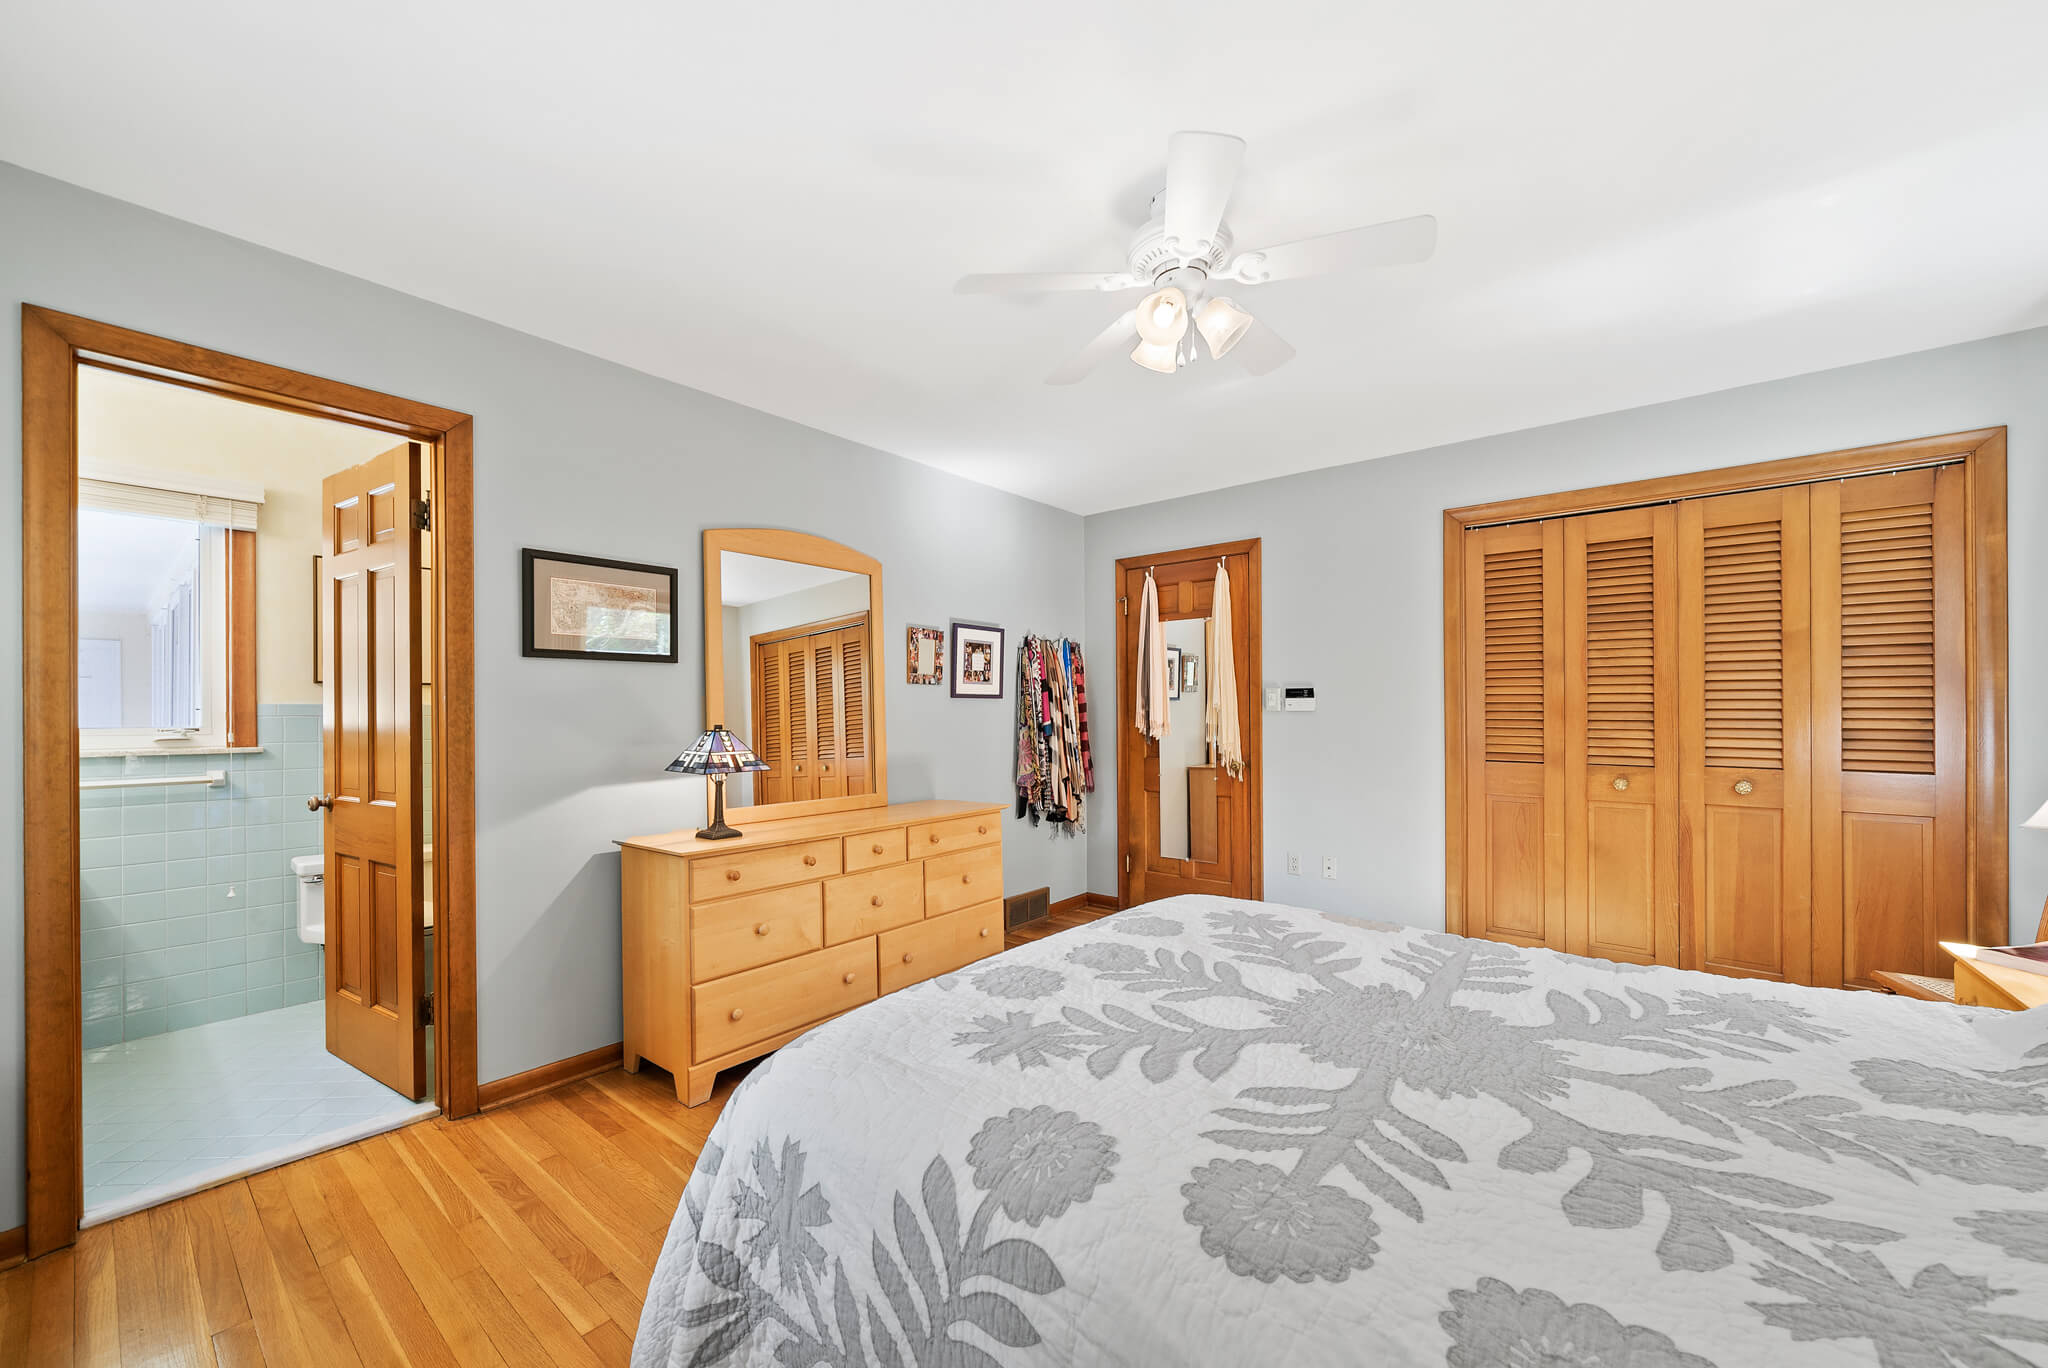 Large closets and tasteful paint colors